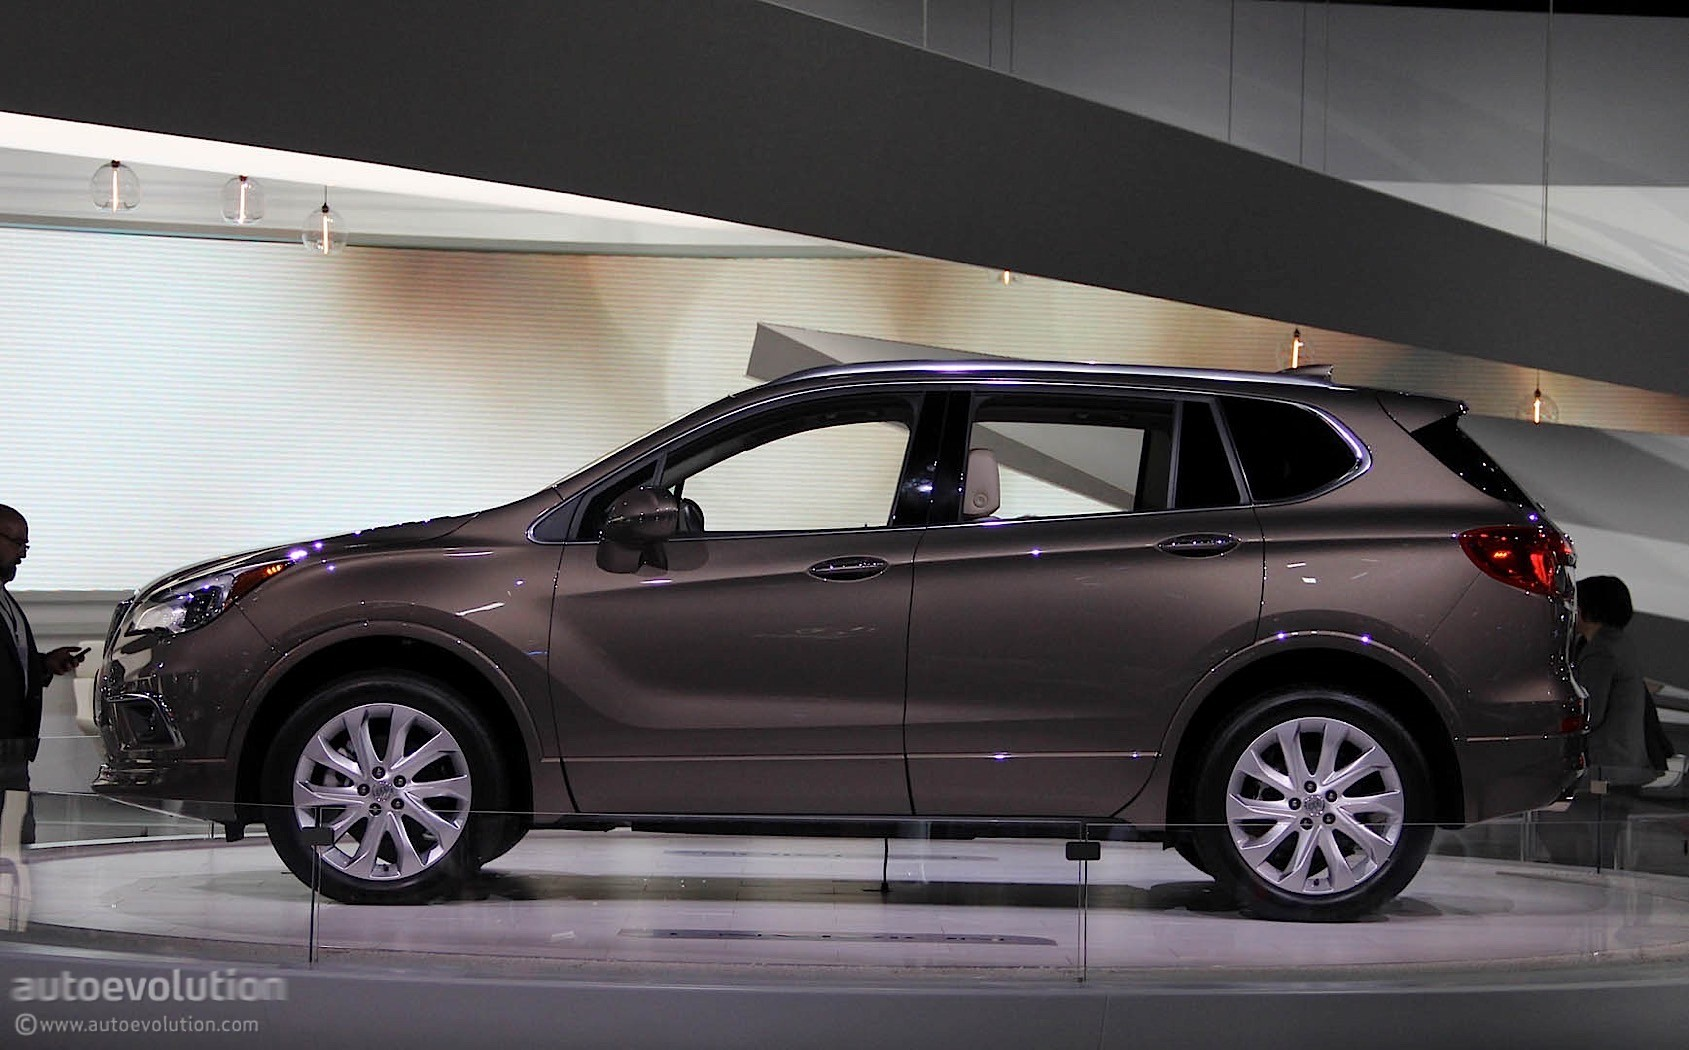 2016 buick envision starts at 42 995 2017 my at 34 990 autoevolution. Black Bedroom Furniture Sets. Home Design Ideas